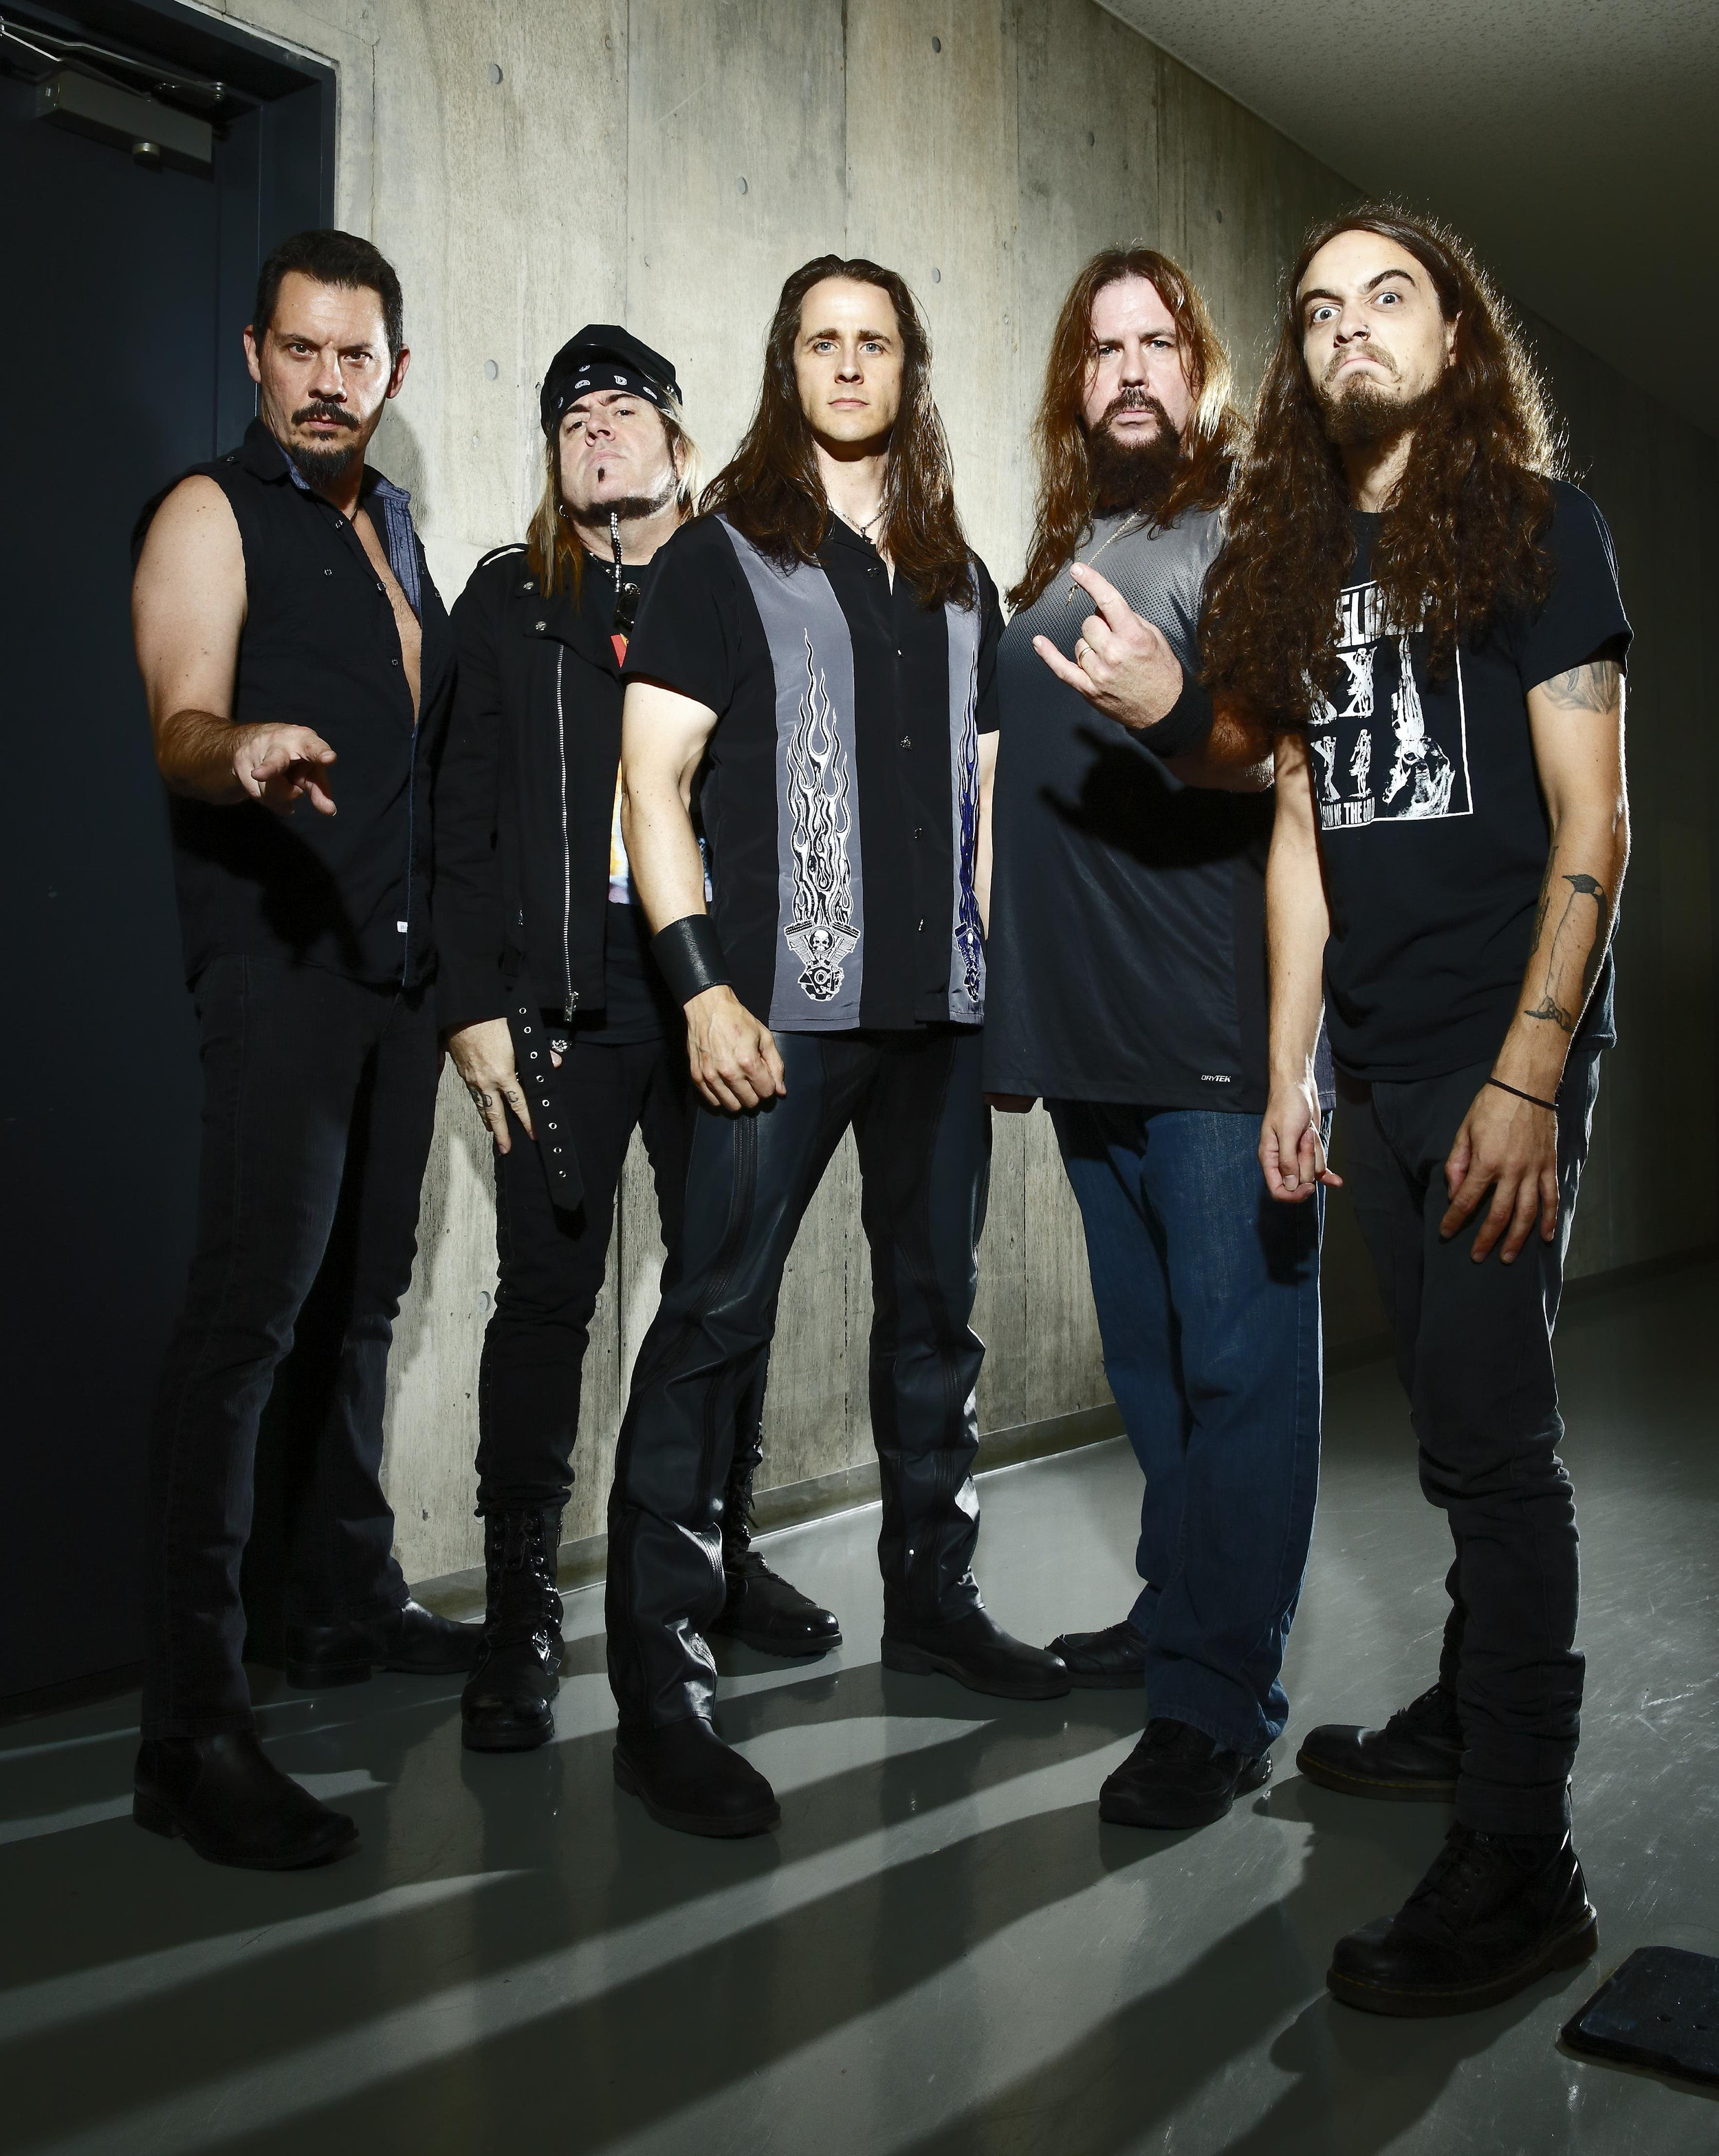 "Since their legendary debut album "" Rock City "" (1977),  RIOT  has released numerous heavy metal classics, including "" Fire Down Under "" (with classics like "" Swords And Tequila ""), their masterpiece "" Thundersteel "" (1988), and the unforgotten "" The Privilege Of Power ""(1990).  After the death of  Mark Reale  and the departure of  Tony Moore ,  Todd Michael Hall  (from Michigan, USA), completed the line-up of the band, which in the meantime performed under the name of  RIOT V  under the auspices of the two long term members and main songwriters  Donnie van Stavern  (bass) and  Mike Flyntz  (guitar). With the critically acclaimed "" Unleash The Fire "" (2014), a pure power metal jewel once again underlined the musical importance and influence of the quintet.  Many artists name-check  RIOT  as an important influence of their musical career and have paid tribute to the power metal godfathers on multiple occasions. The list is long and includes several well-known acts such as  HAMMERFALL  (  Flight Of The Warrio   r ),  Luca Trill's RHAPSODY  (  Thunderstee l ),  AXEL RUDI PELL  (' Warrior' ) and newcomers such as  NIGHT DEMON  (  Road Racin  ),  ALPHA TIGER  (  Flight Of The Warrior  ),  SAVAGE MASTER  (  Swords And Tequila  ) and  STALLION  (  Rock City ) .   RIOT V  truely are metal soldiers and will keep marching and fighting the good fight to bring you the music you've come to know, love and expect from  RIOT V ."